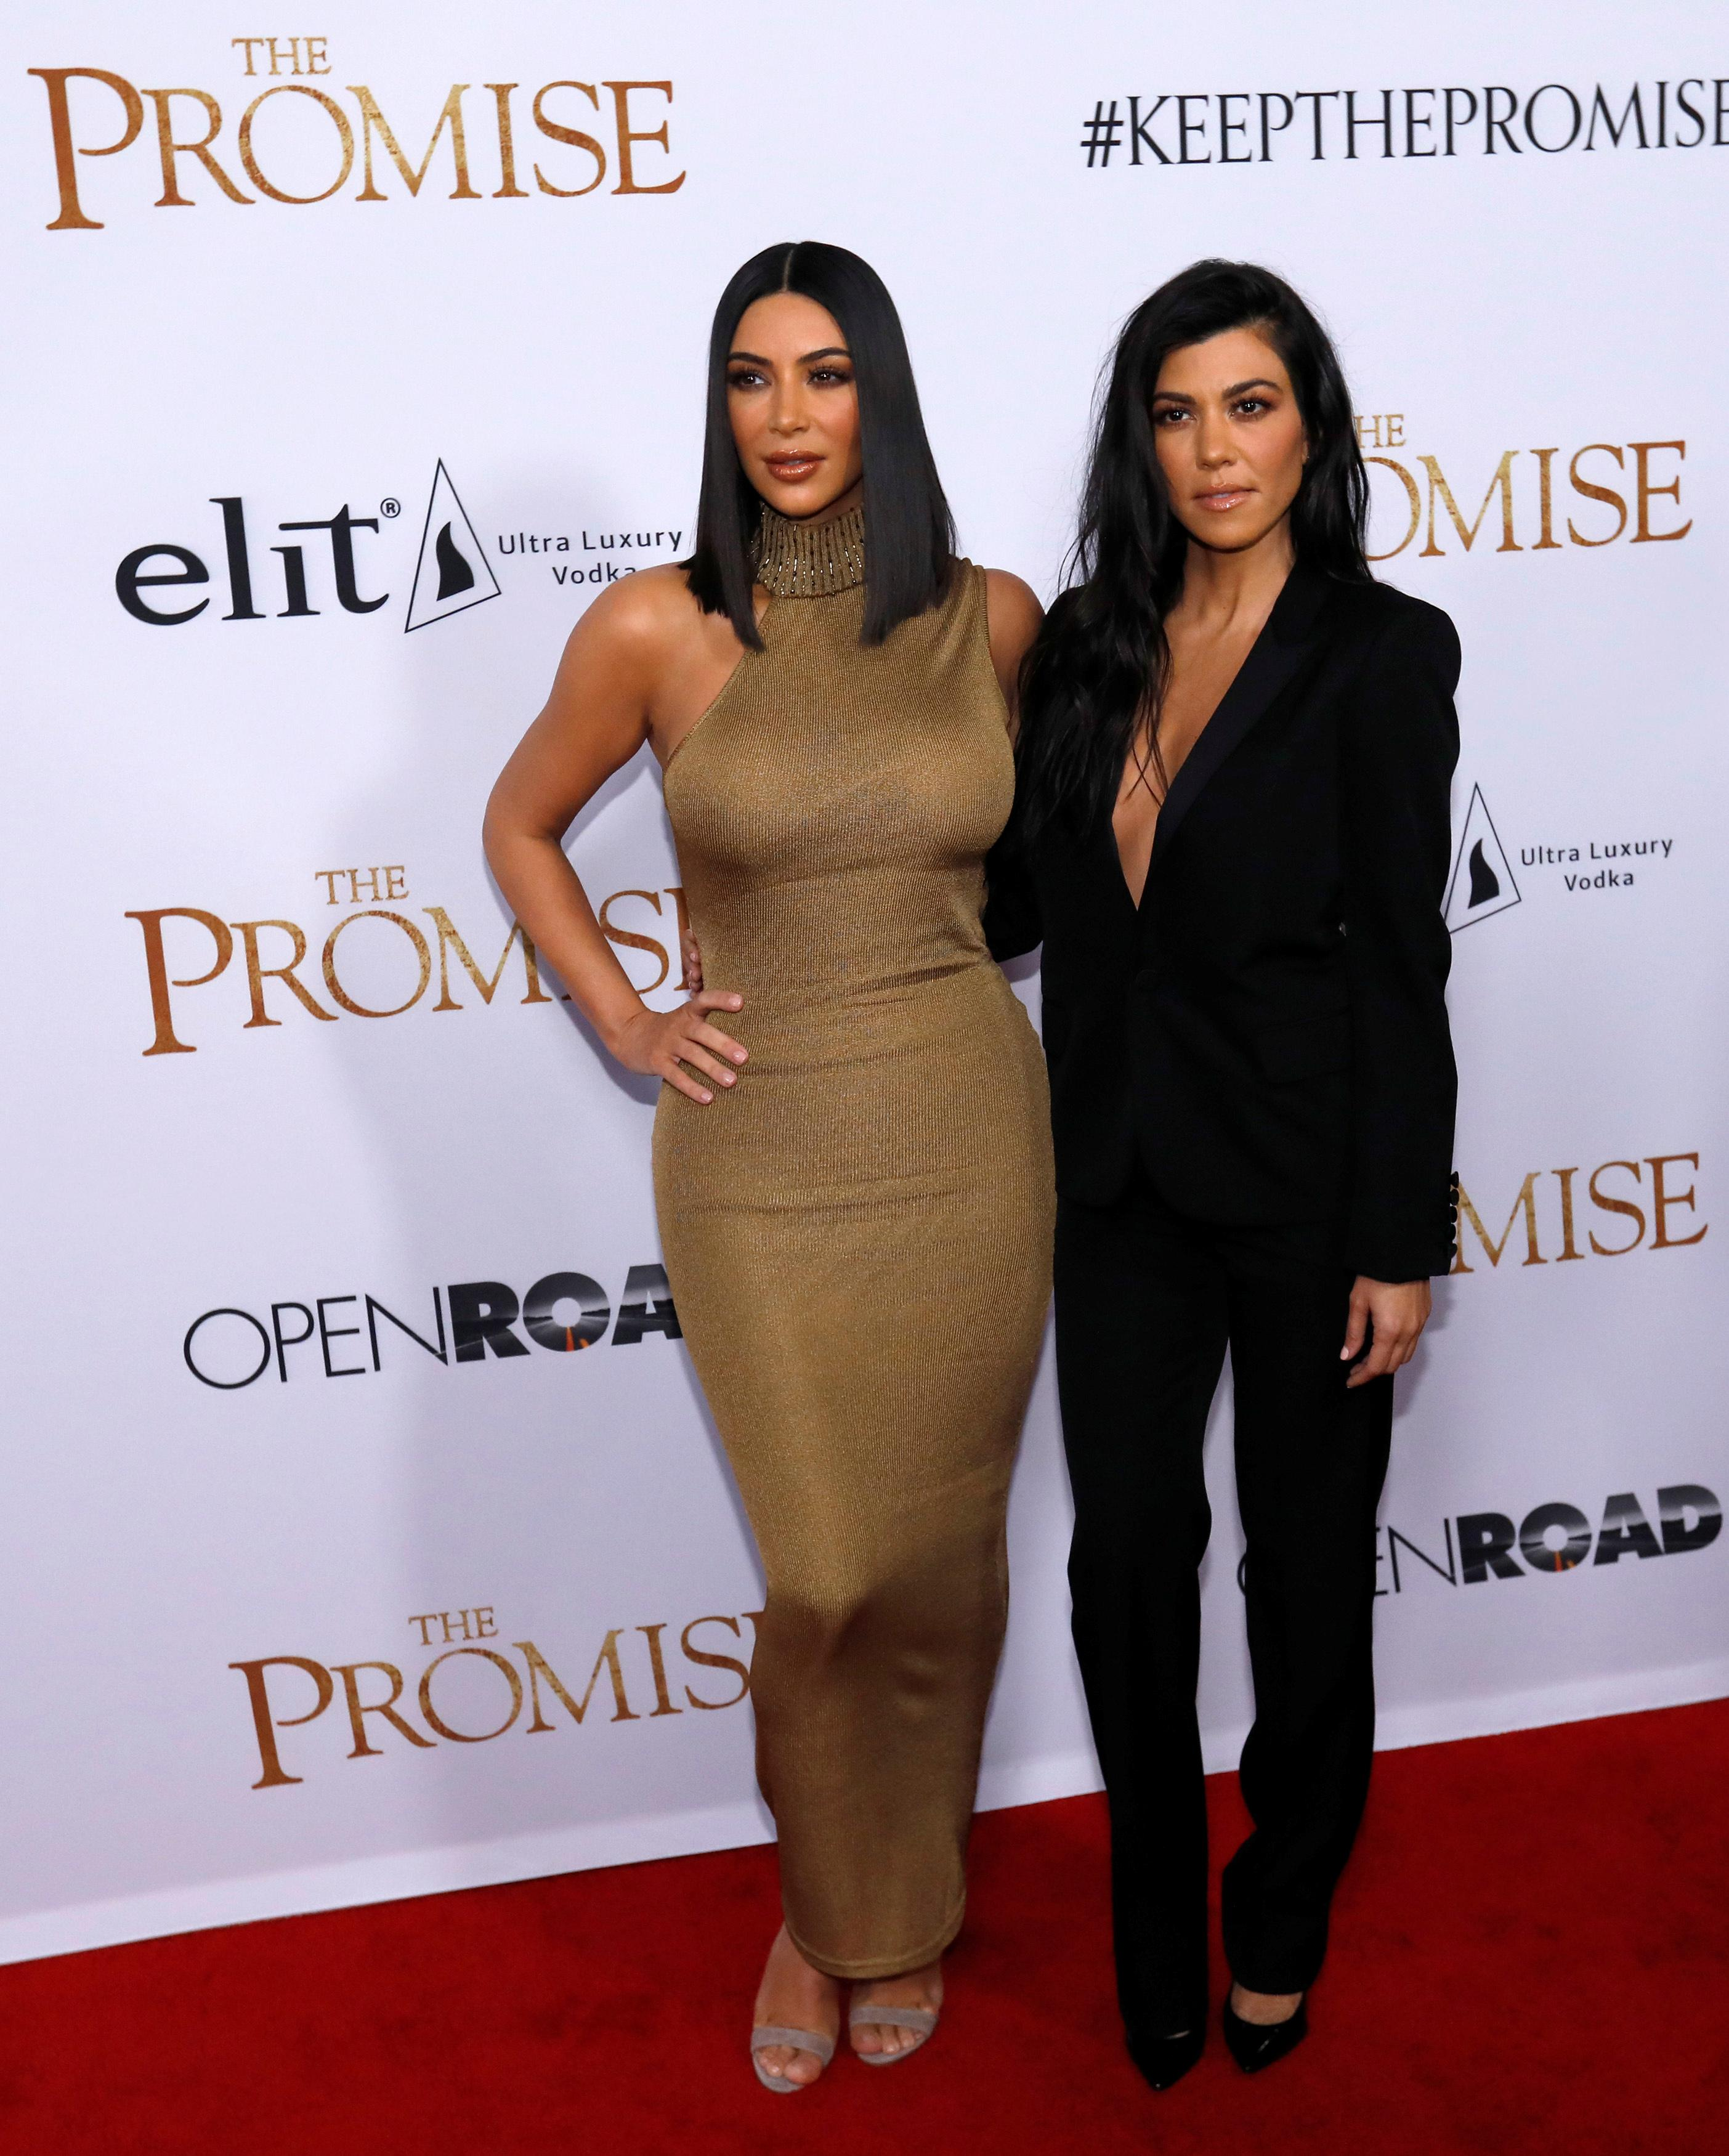 Kim Kardashian and sister Kourtney Kardashian